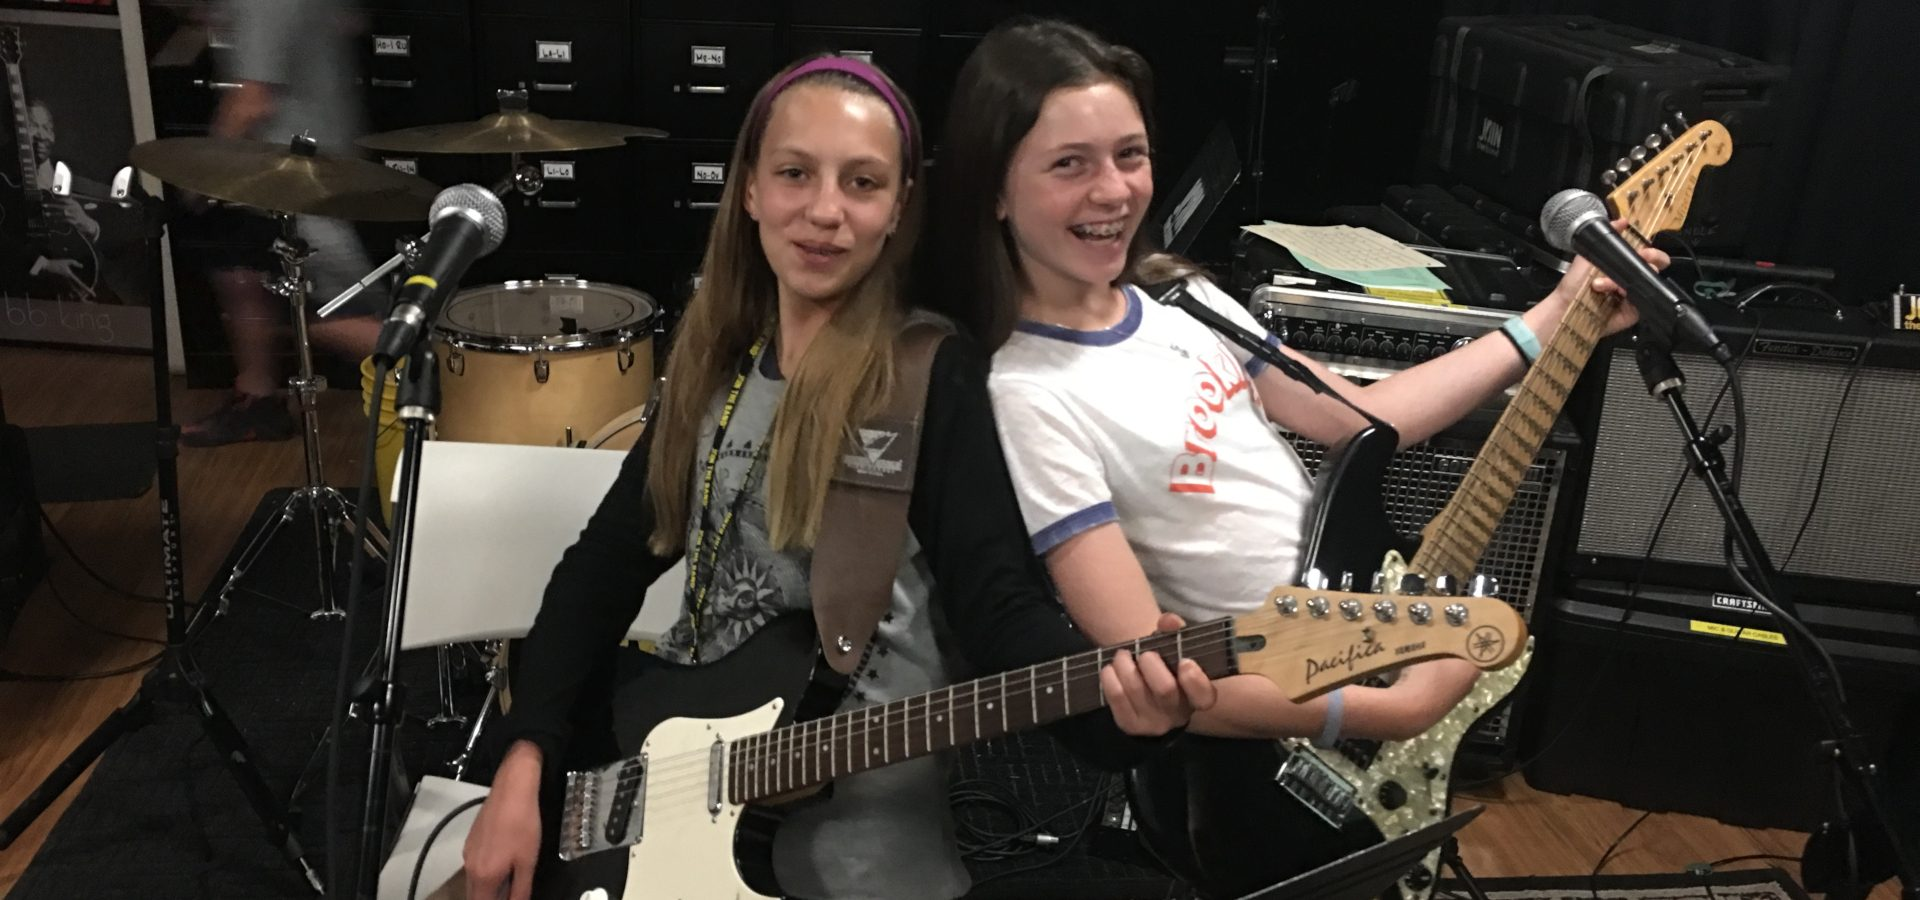 Summer Music Camps - Girls Rock Band - Sherman Oaks, Los Angeles - Join The Band